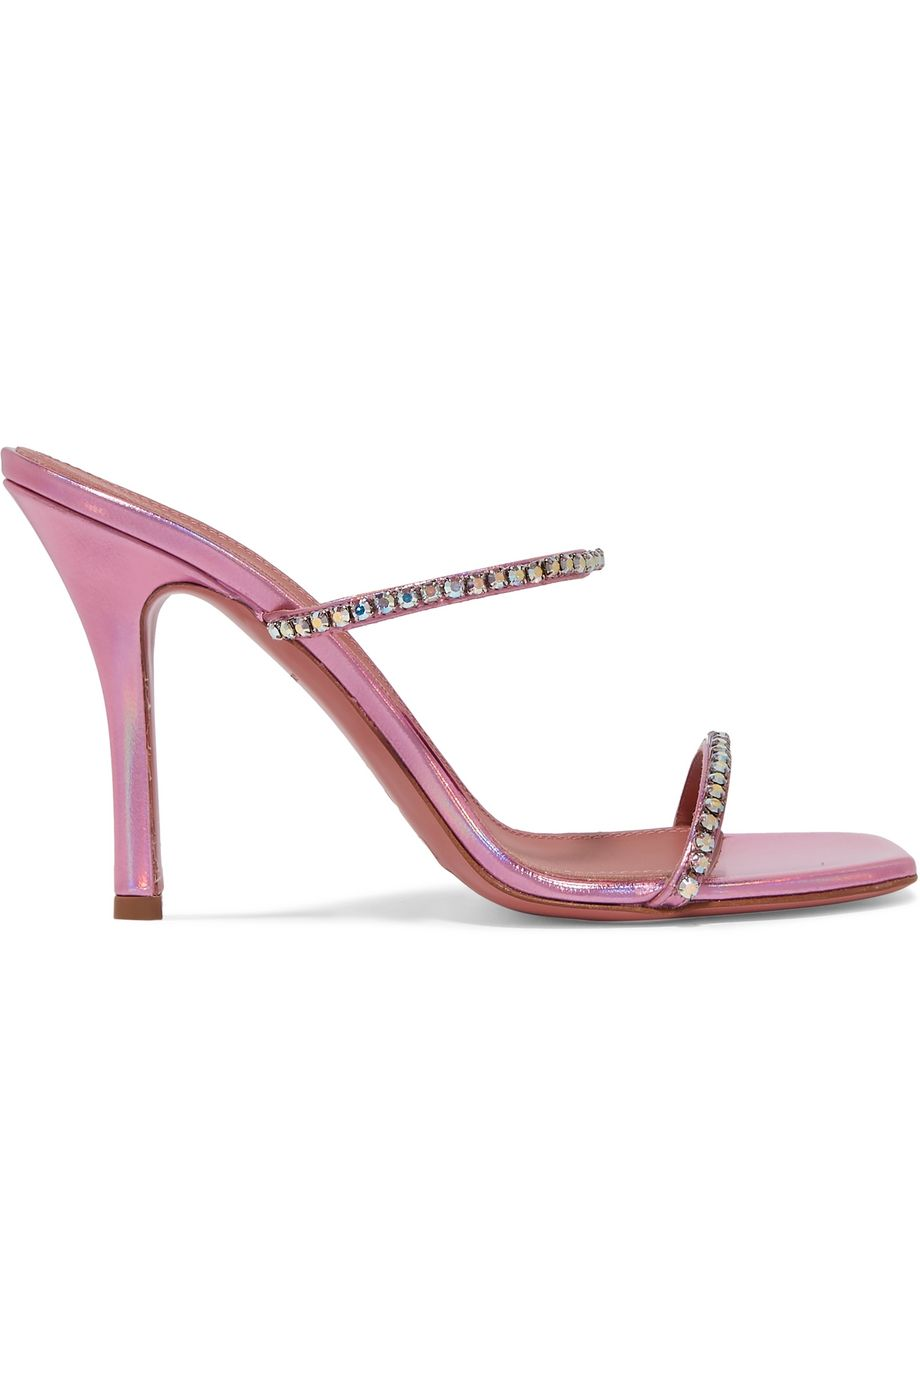 Gilda crystal-embellished metallic leather sandals by Amina Muaddi, available on net-a-porter.com for $336 Kylie Jenner Shoes Exact Product